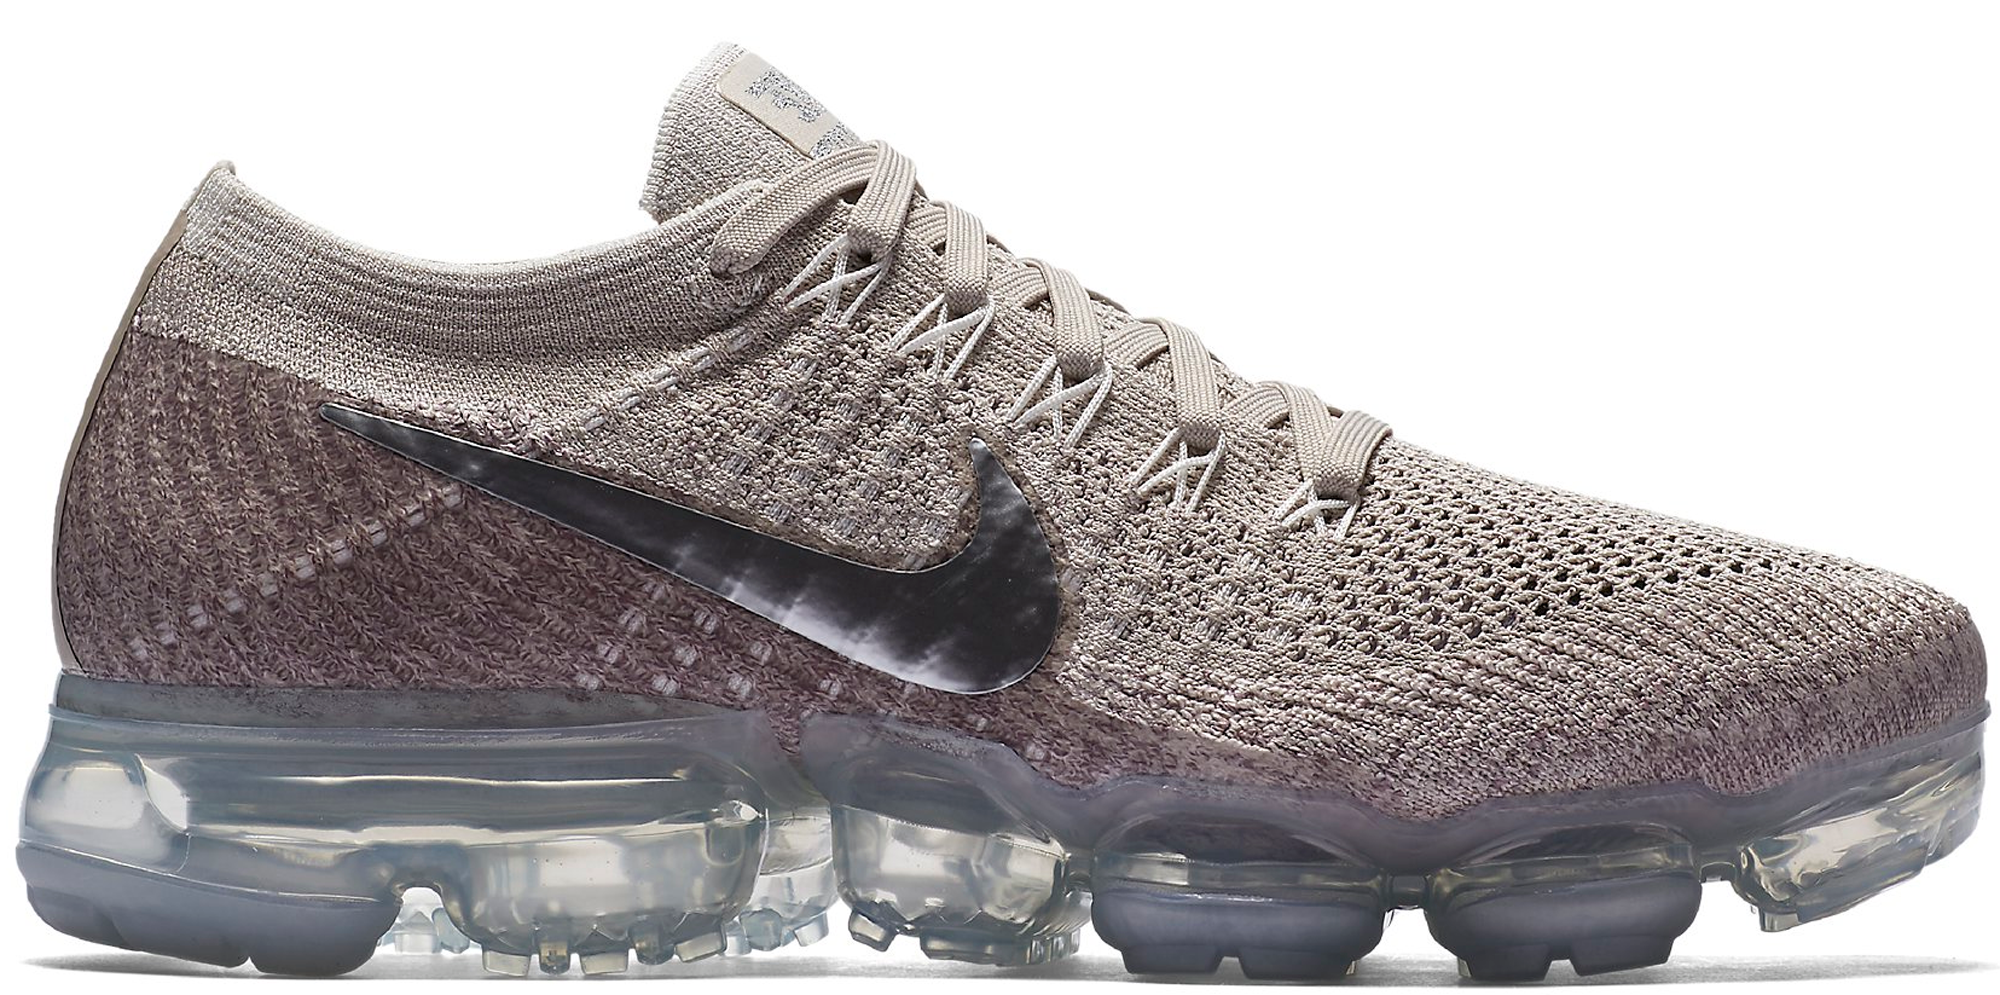 Nike Air VaporMax Surfaces in a